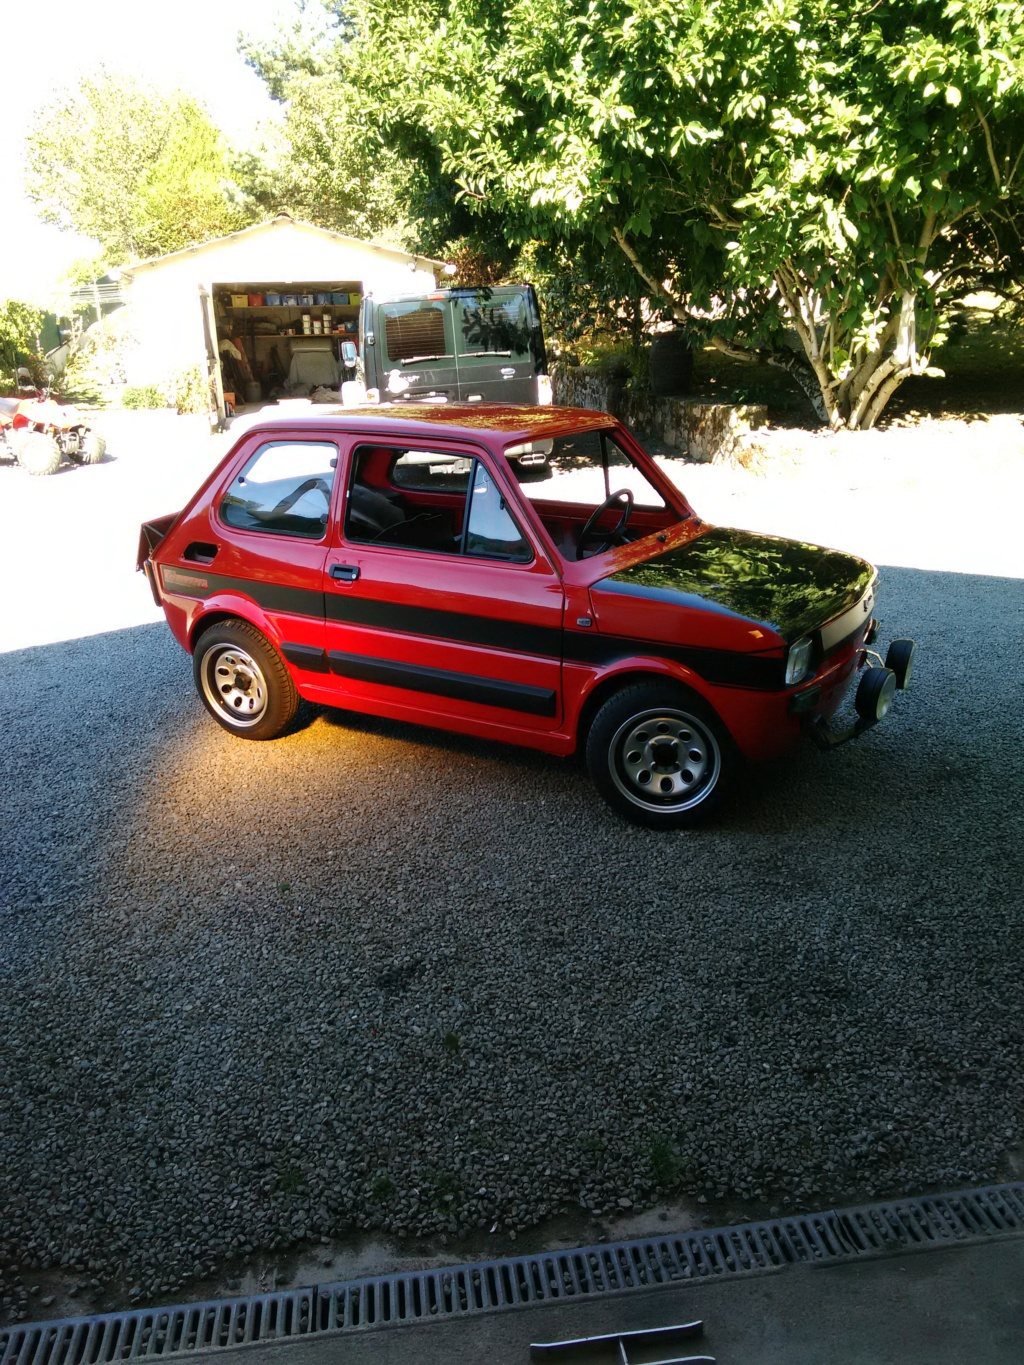 fiat 126 p4 - Page 2 01412